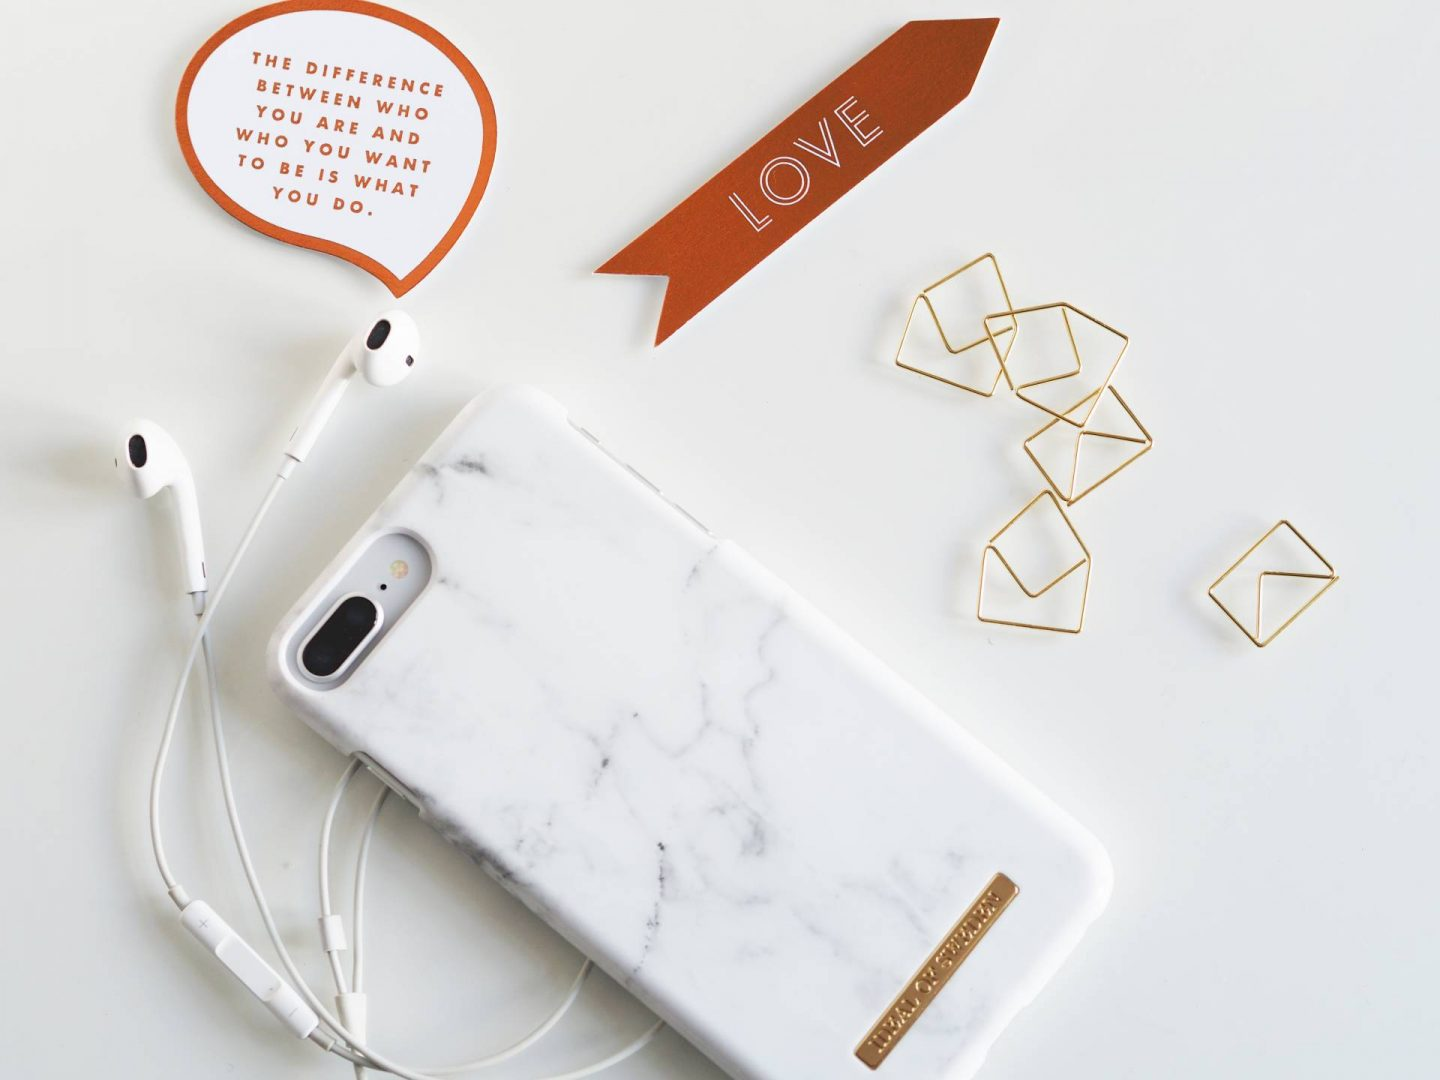 BLOGGER PODCASTS THAT WILL TEACH YOU A LOT